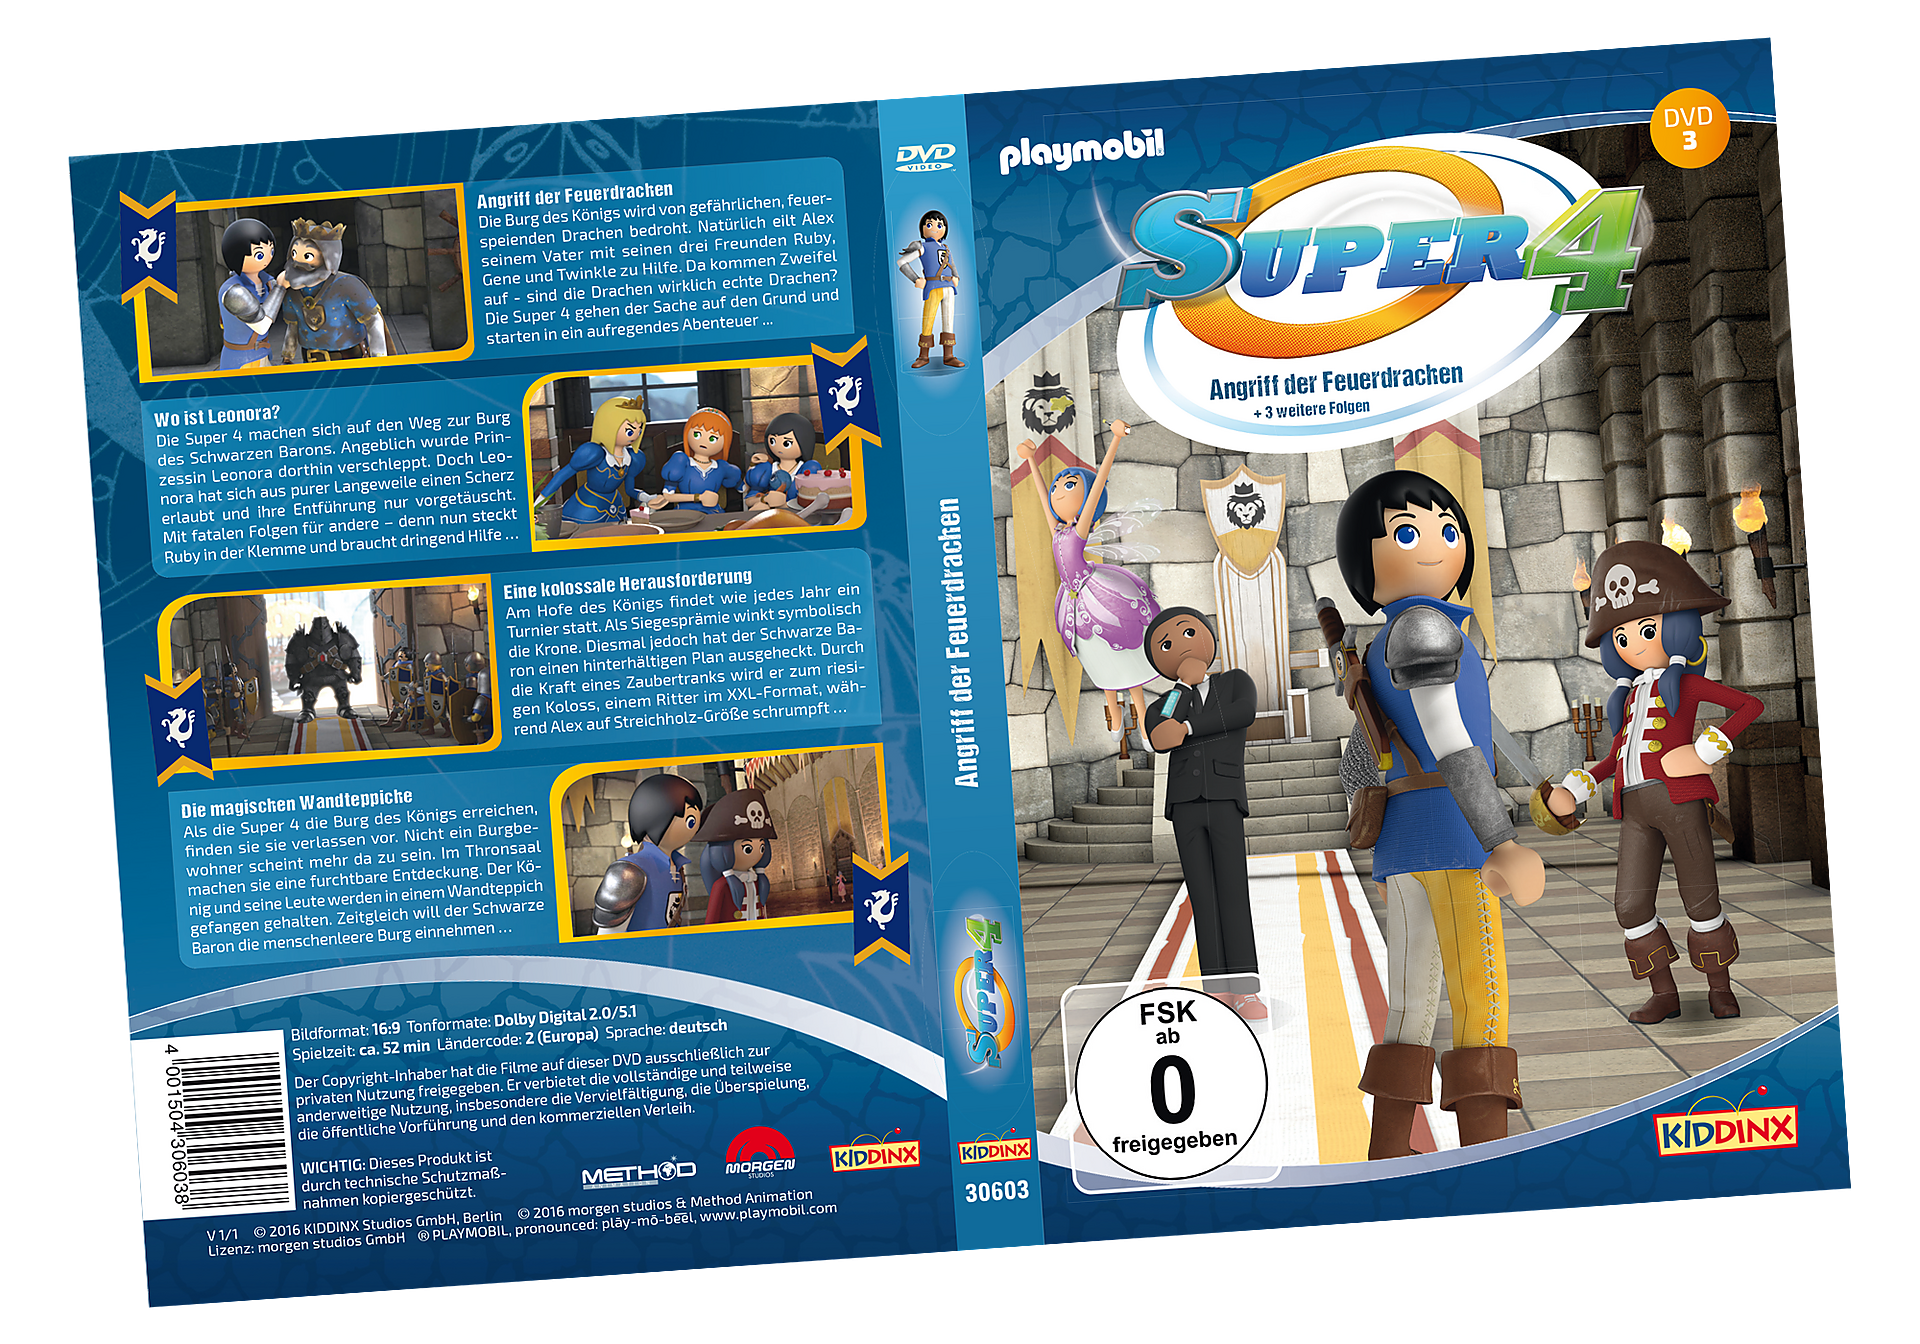 http://media.playmobil.com/i/playmobil/80478_product_detail/DVD 3 Super4: Angriff der Feuerdrachen